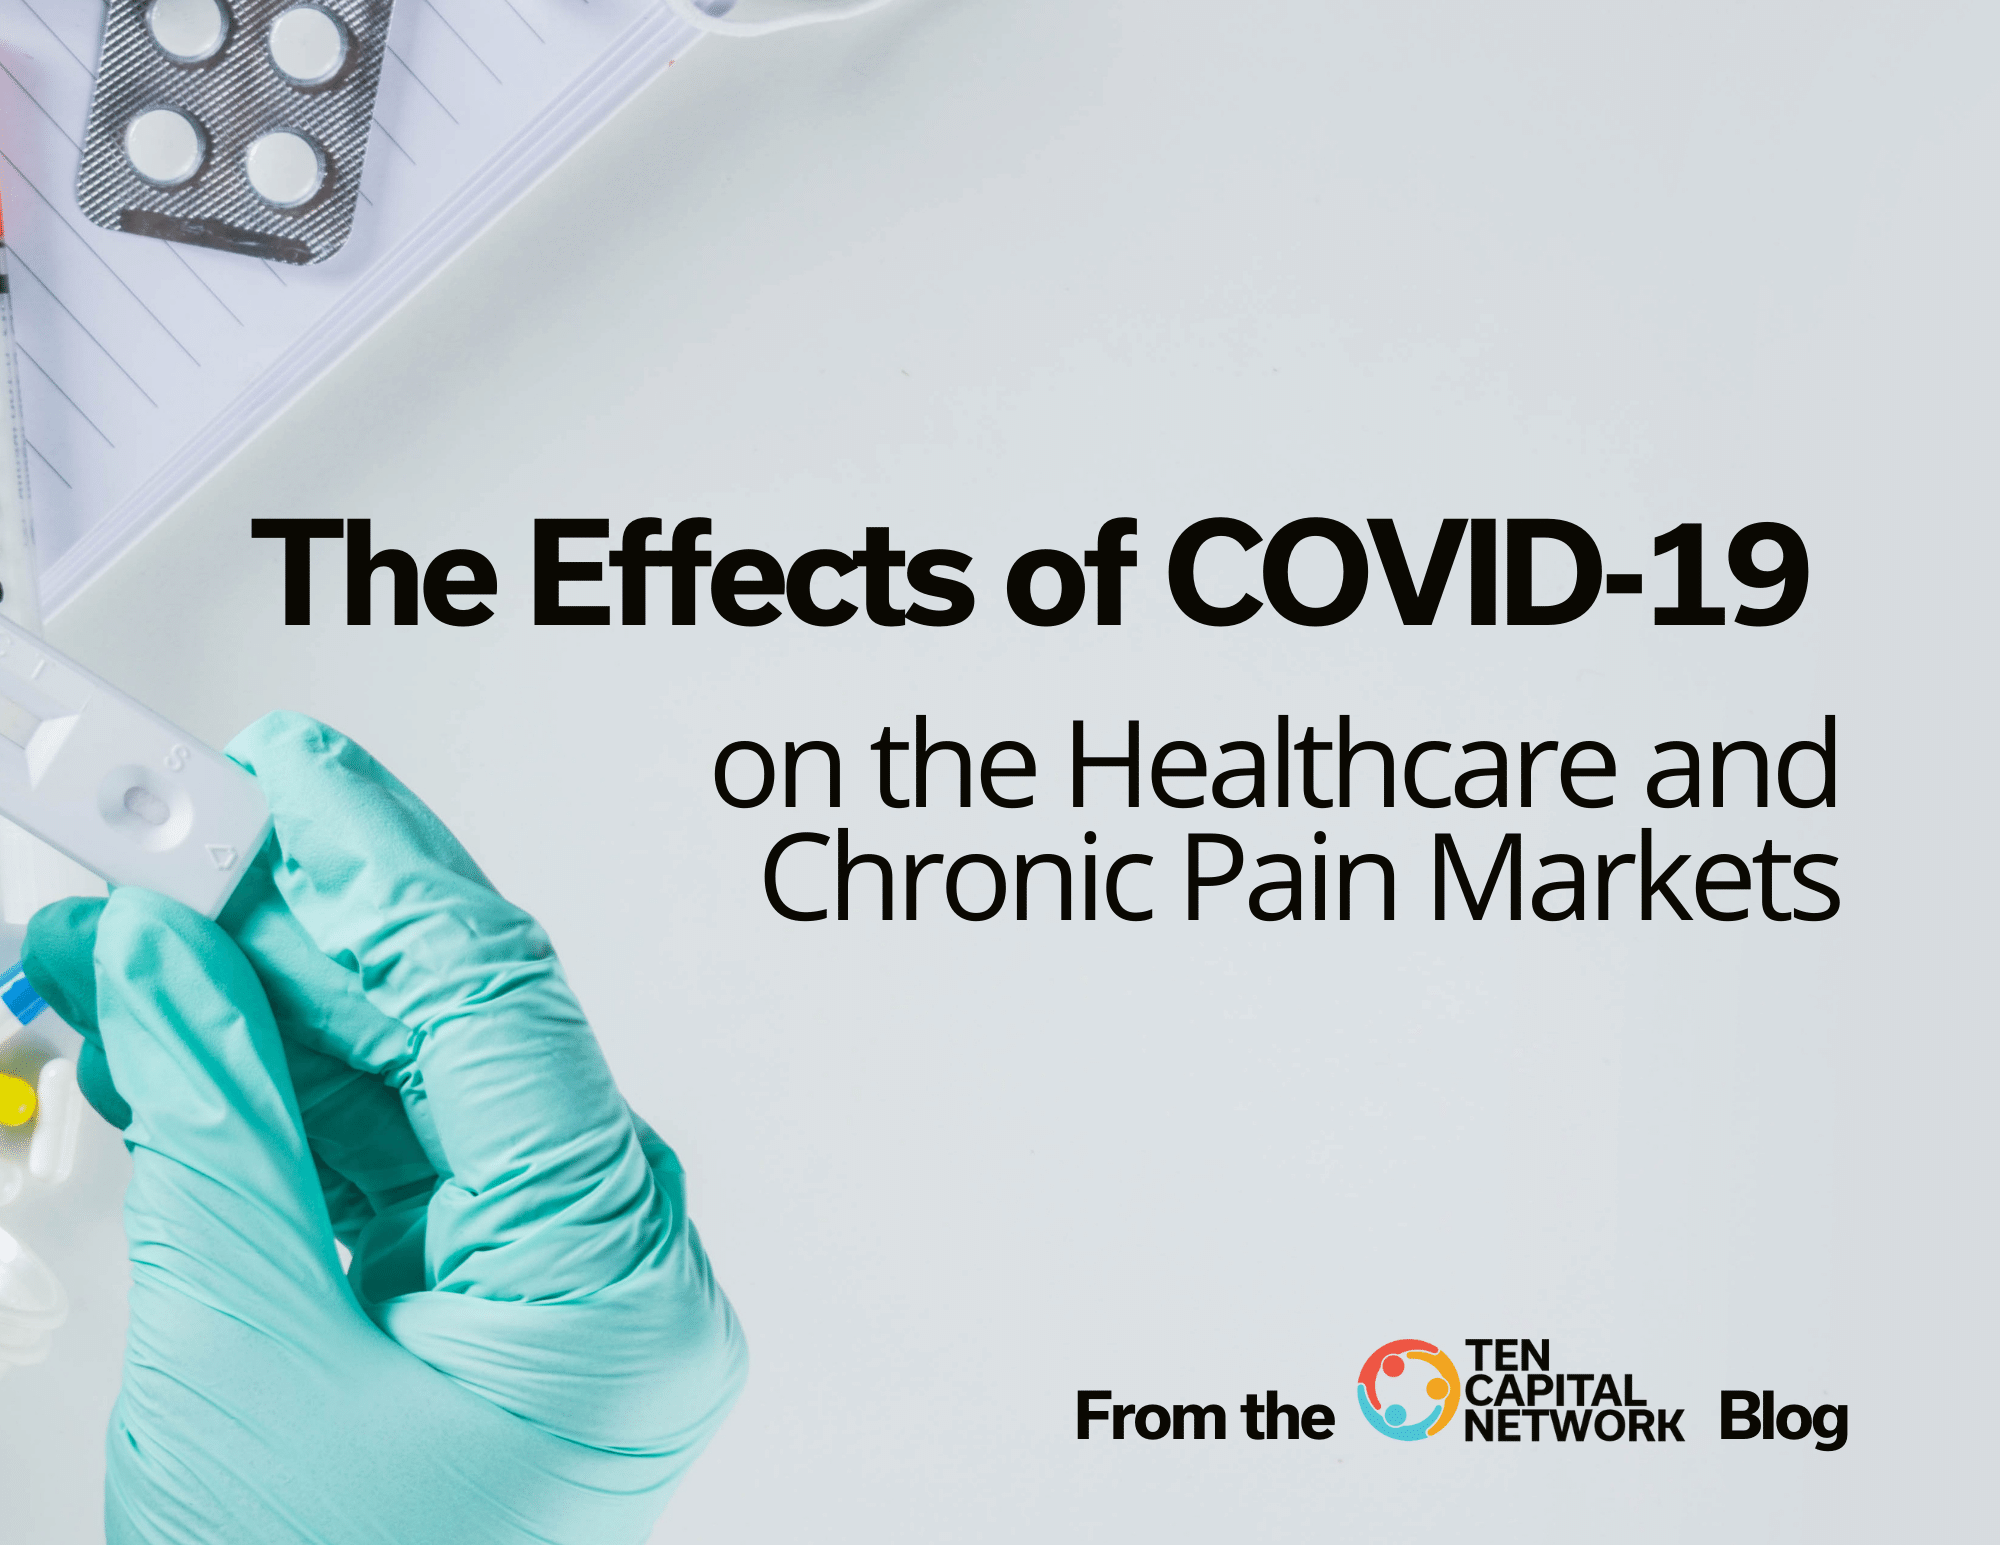 Effects of COVID-19 on the Healthcare and Chronic Pain Markets